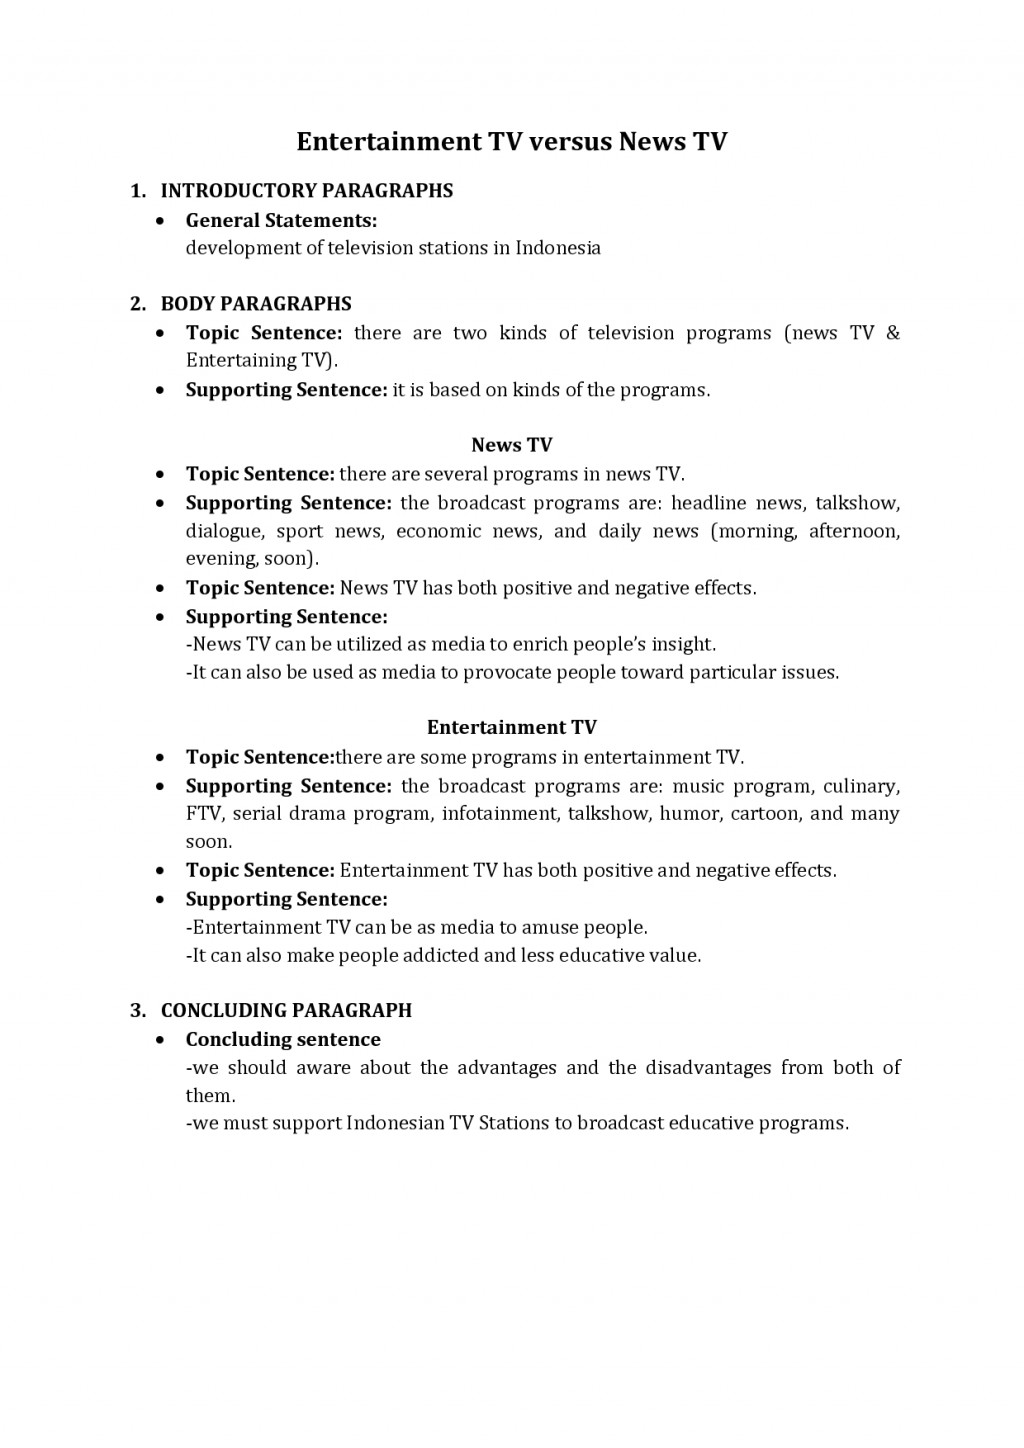 013 Essay Example College Outline Examples And Search On Pinterest Inmat What Is An Singular For Follows A Generic Argumentative About Capitalism Socialism Brainly Large